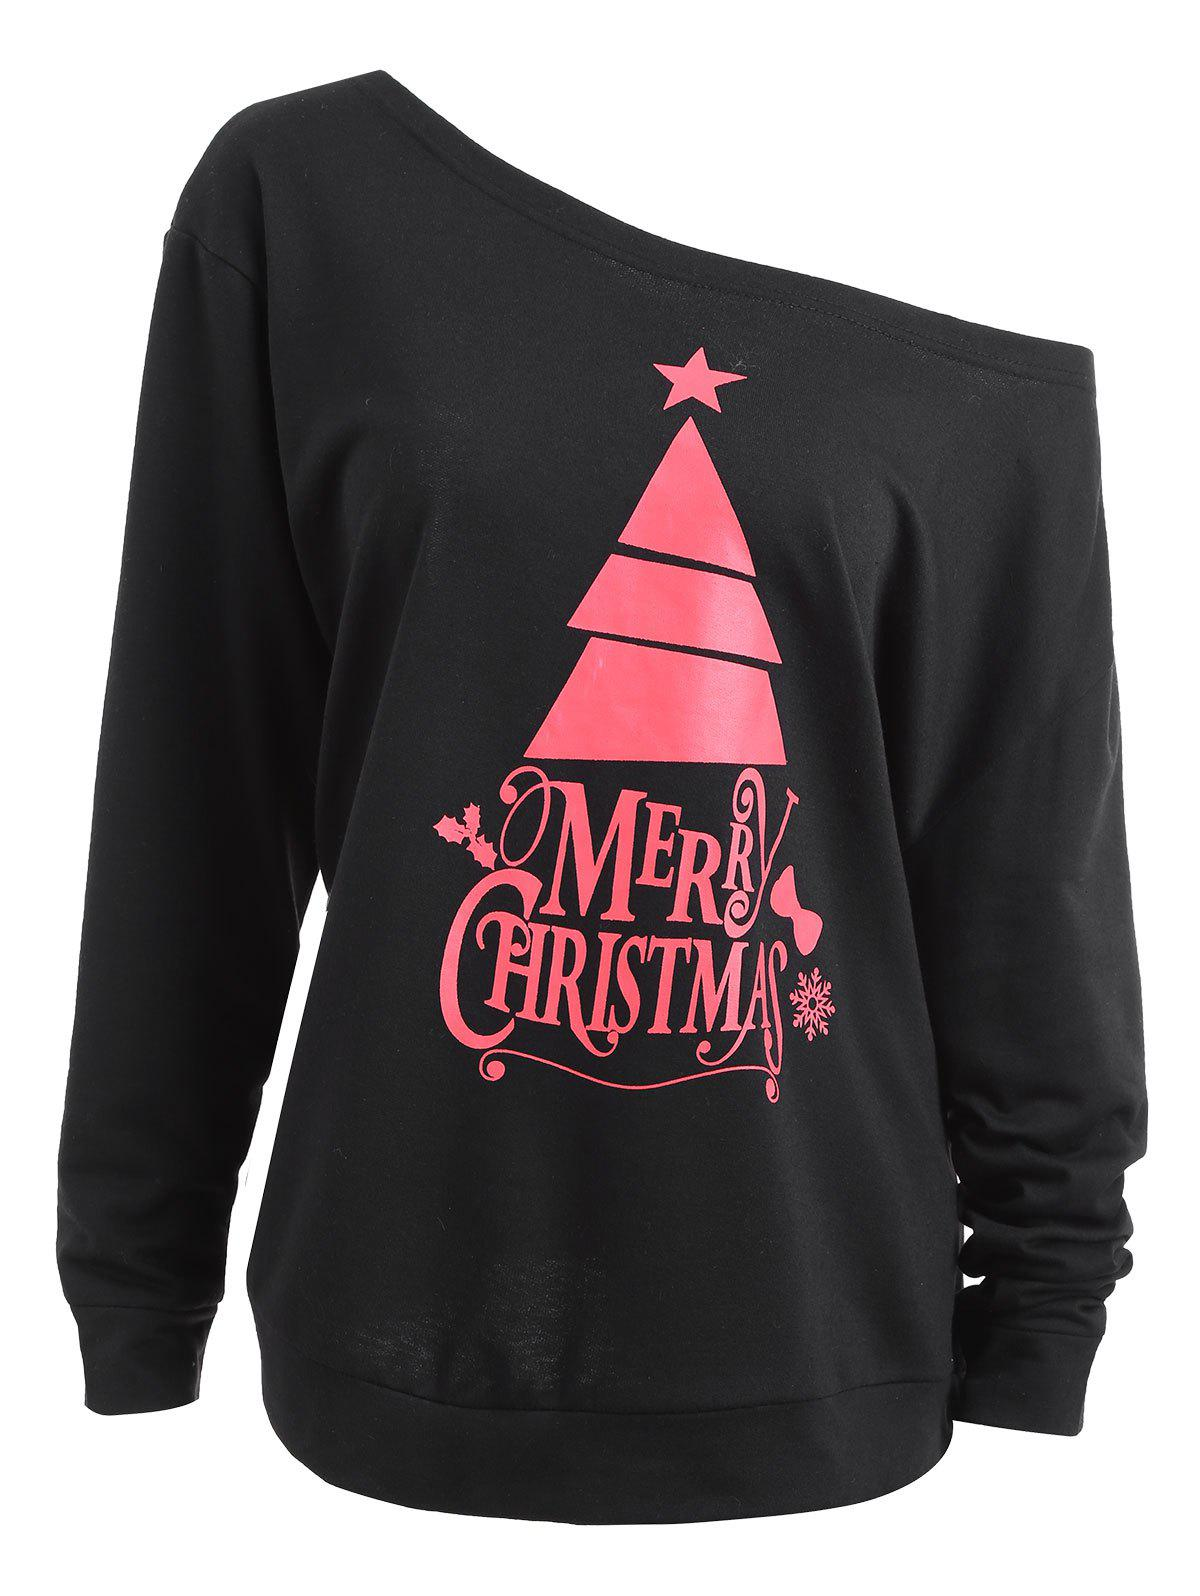 Plus Size Skew Neck Cute Christmas Tree SweatshirtWOMEN<br><br>Size: 4XL; Color: BLACK; Material: Cotton Blend,Polyester; Shirt Length: Regular; Sleeve Length: Full; Style: Fashion; Pattern Style: Letter; Season: Fall,Winter; Weight: 0.4100kg; Package Contents: 1 x Sweatshirt;